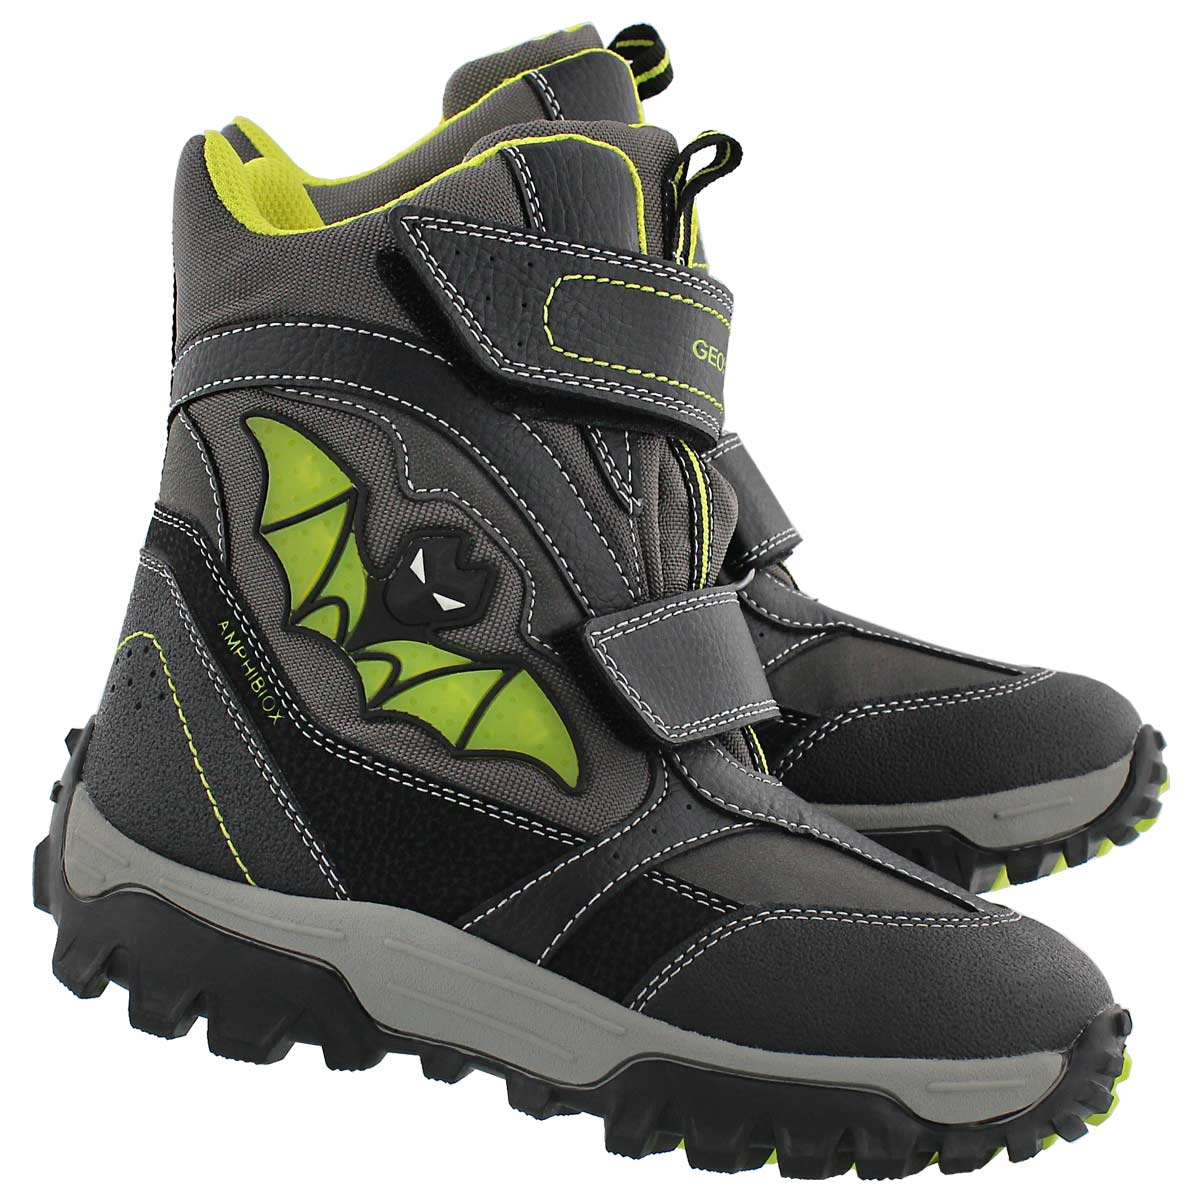 Bys LtHimalayaB ABX bk/lme winter boot